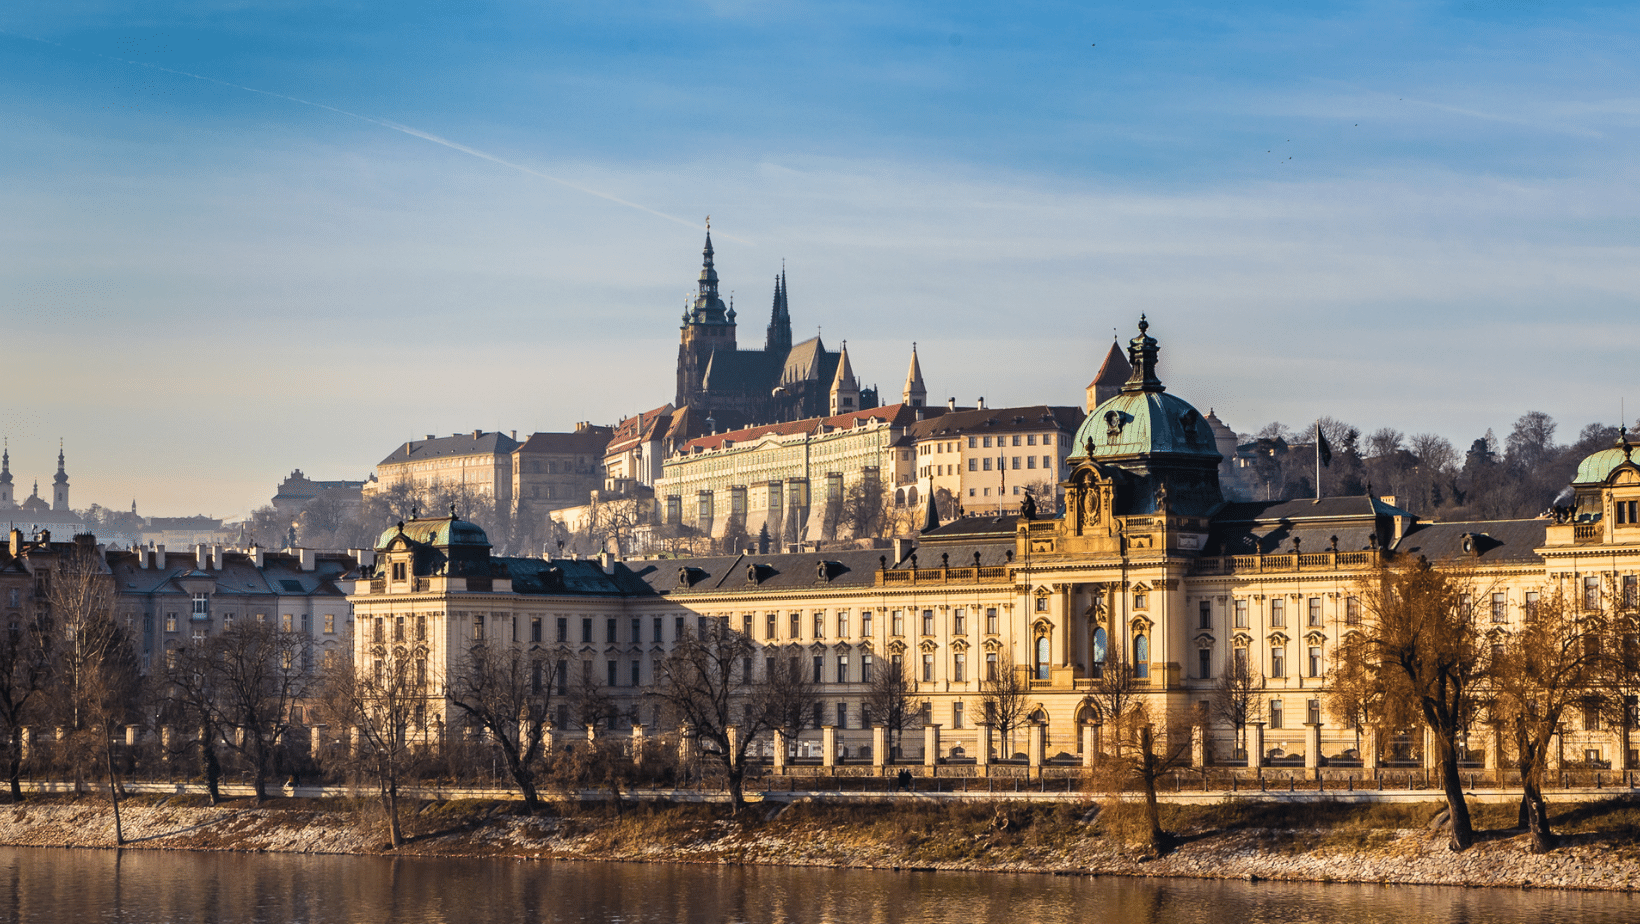 The full view of the gothic castle of Prague and the prague skyline